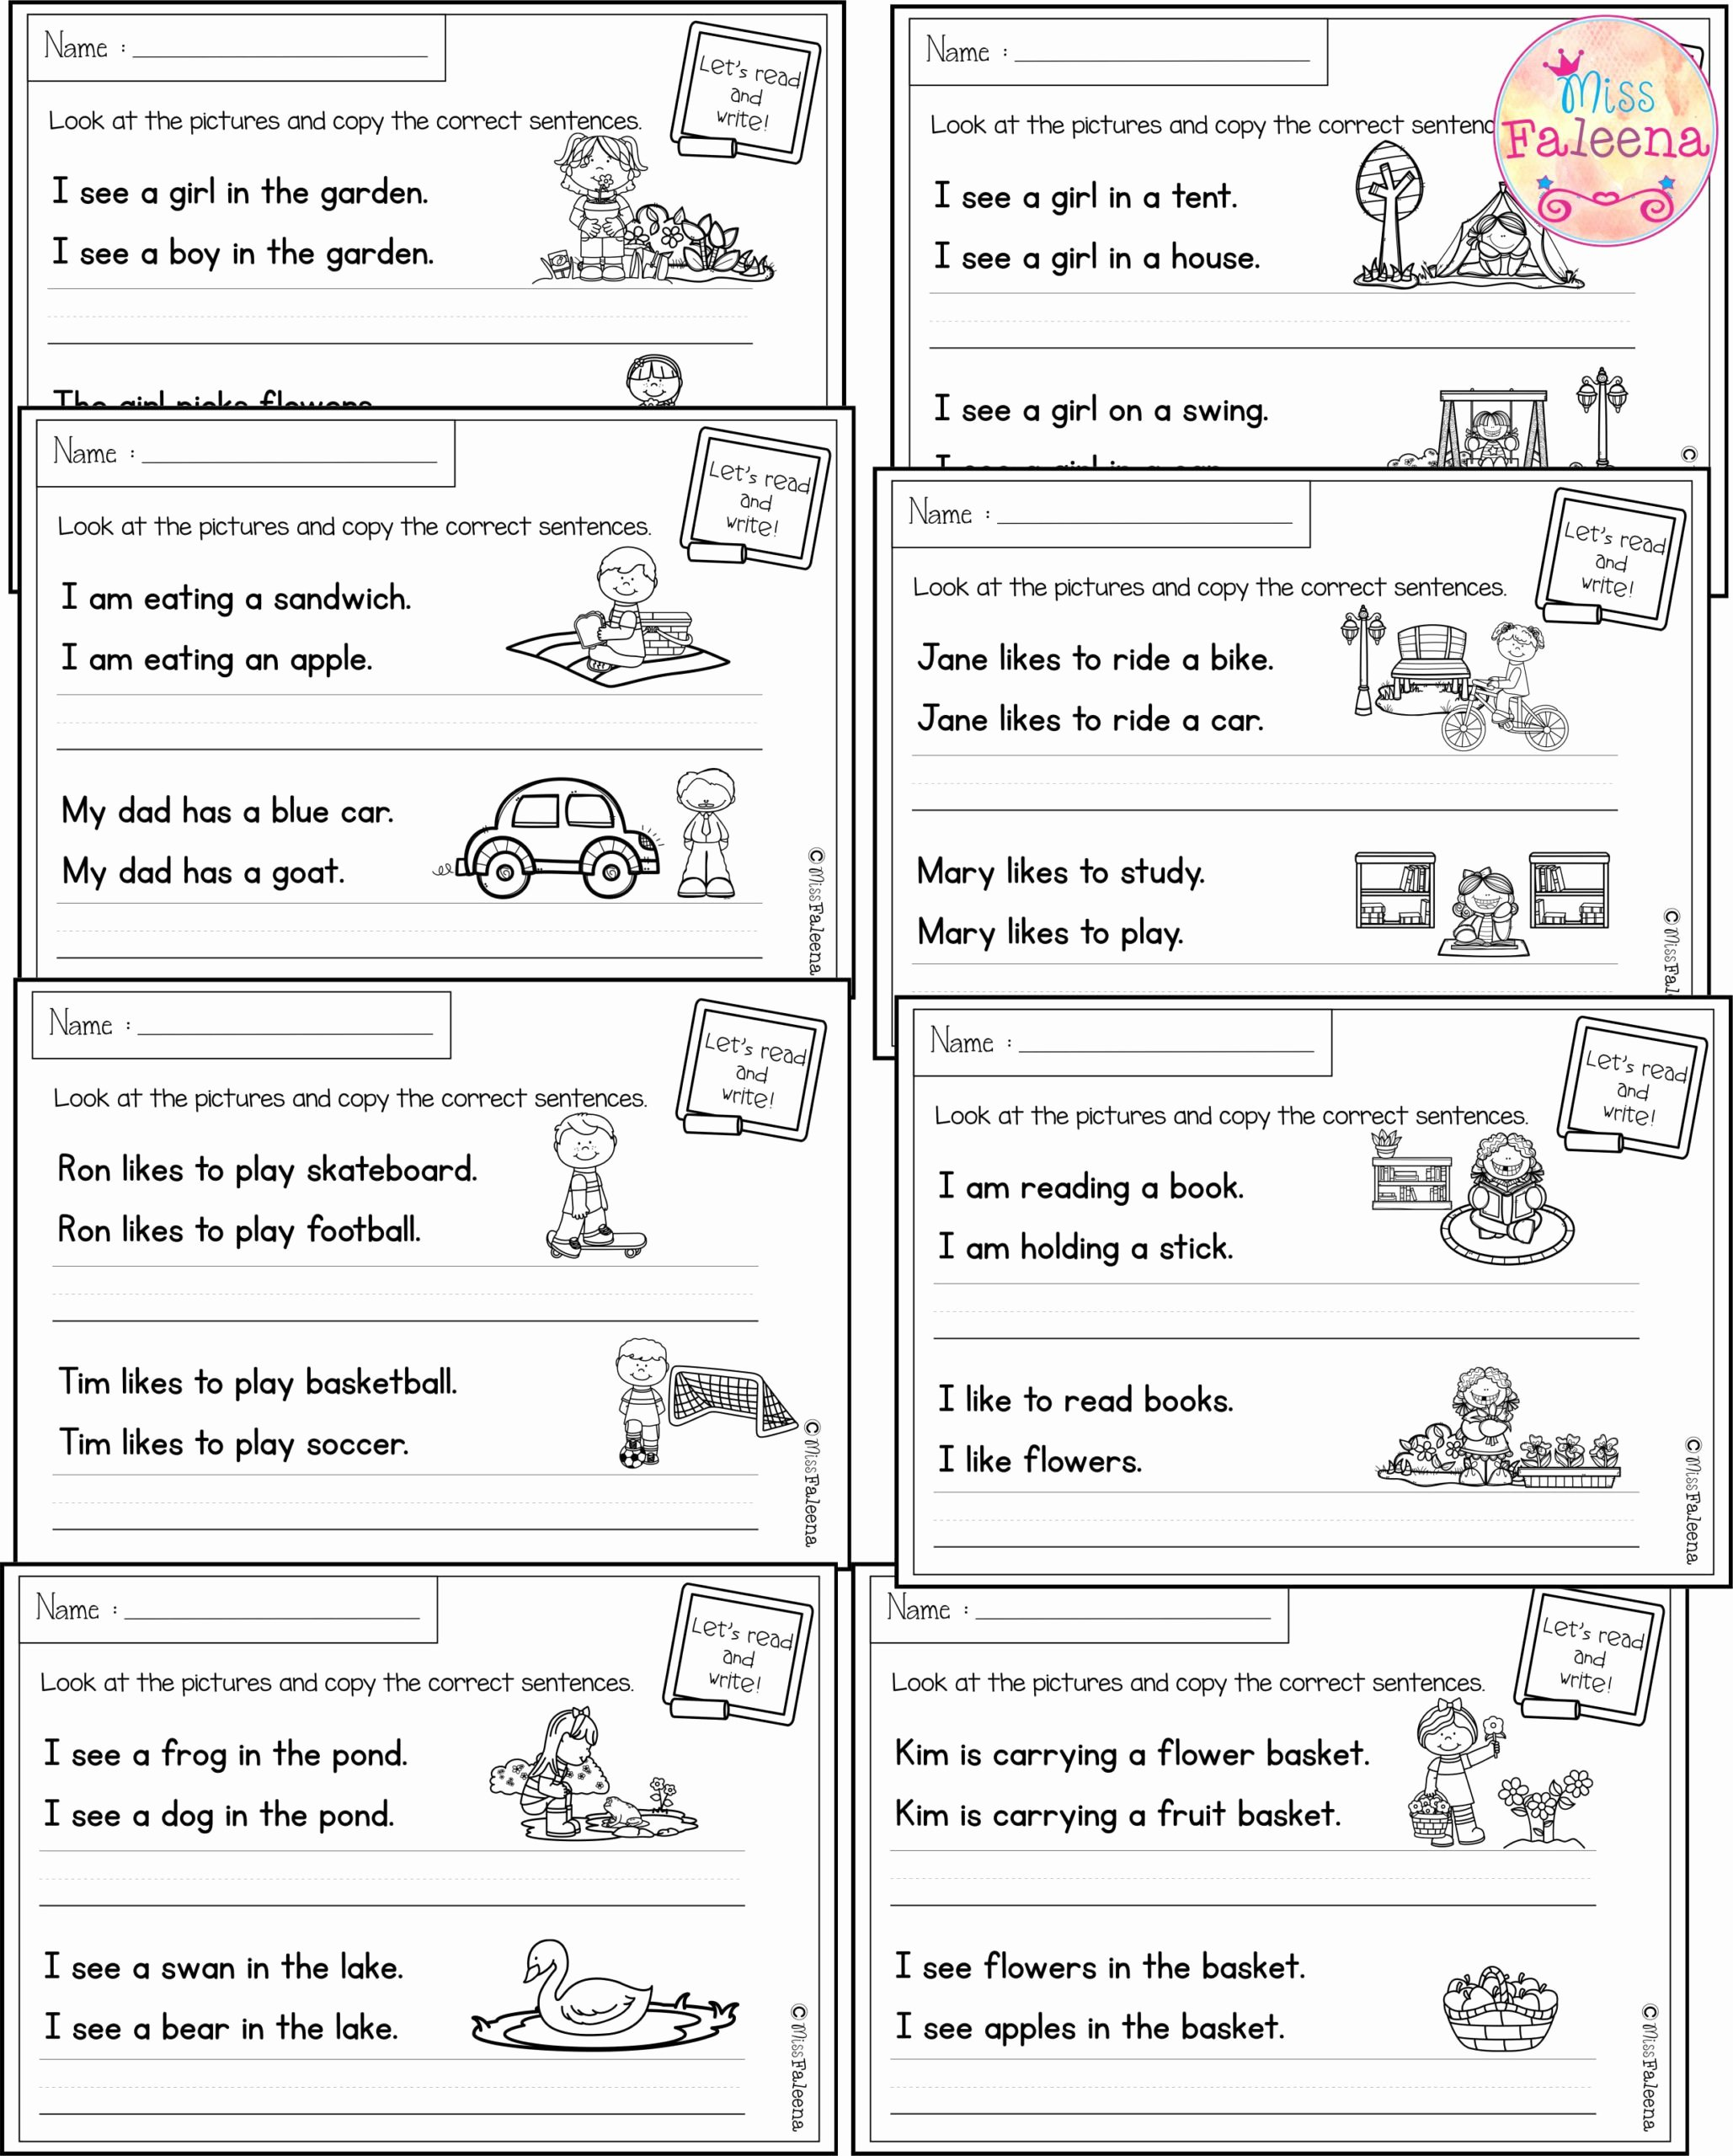 Activities Worksheets for Preschoolers Fresh Worksheet Games for Kids at Christmas Party toddler